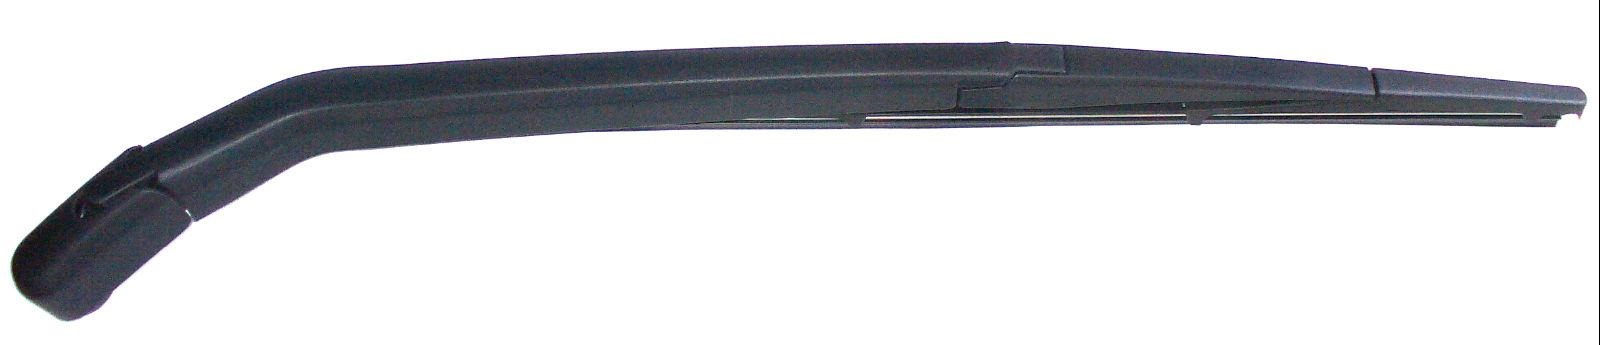 Toyota Camry Windshield Wiper Size 2185 further 8530690 also Brake Light Wiring3 likewise Xc90 Fuse Box Diagram as well Interesting. on change toyota sienna rear window wiper blade